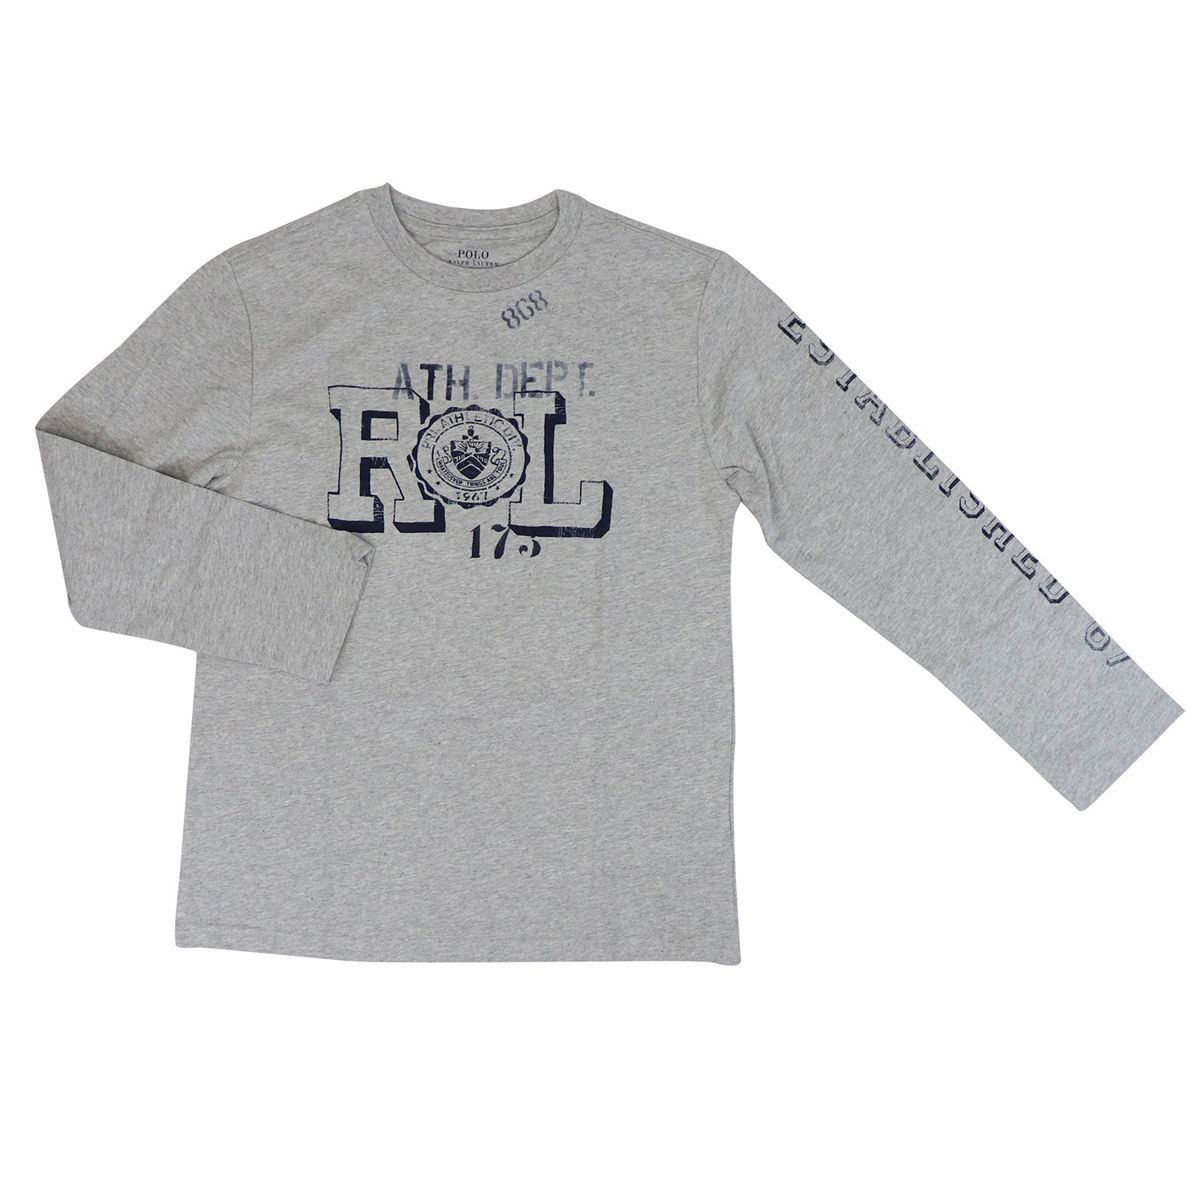 Cotton crew neck sweater with contrasting prints Grey Polo Ralph Lauren